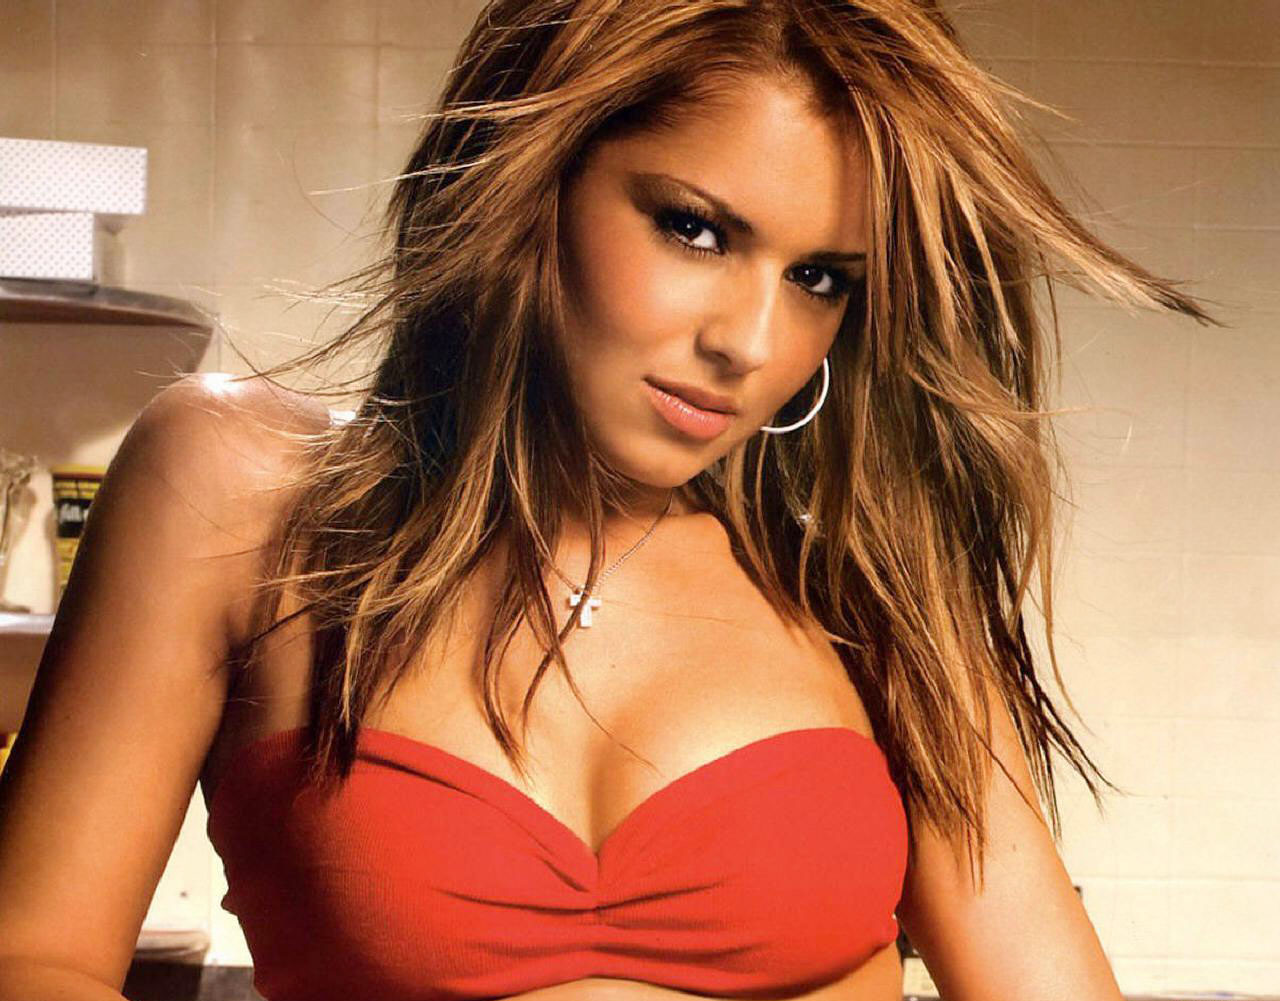 http://dunknowdablogspot.files.wordpress.com/2009/01/cheryl-cole4.jpg